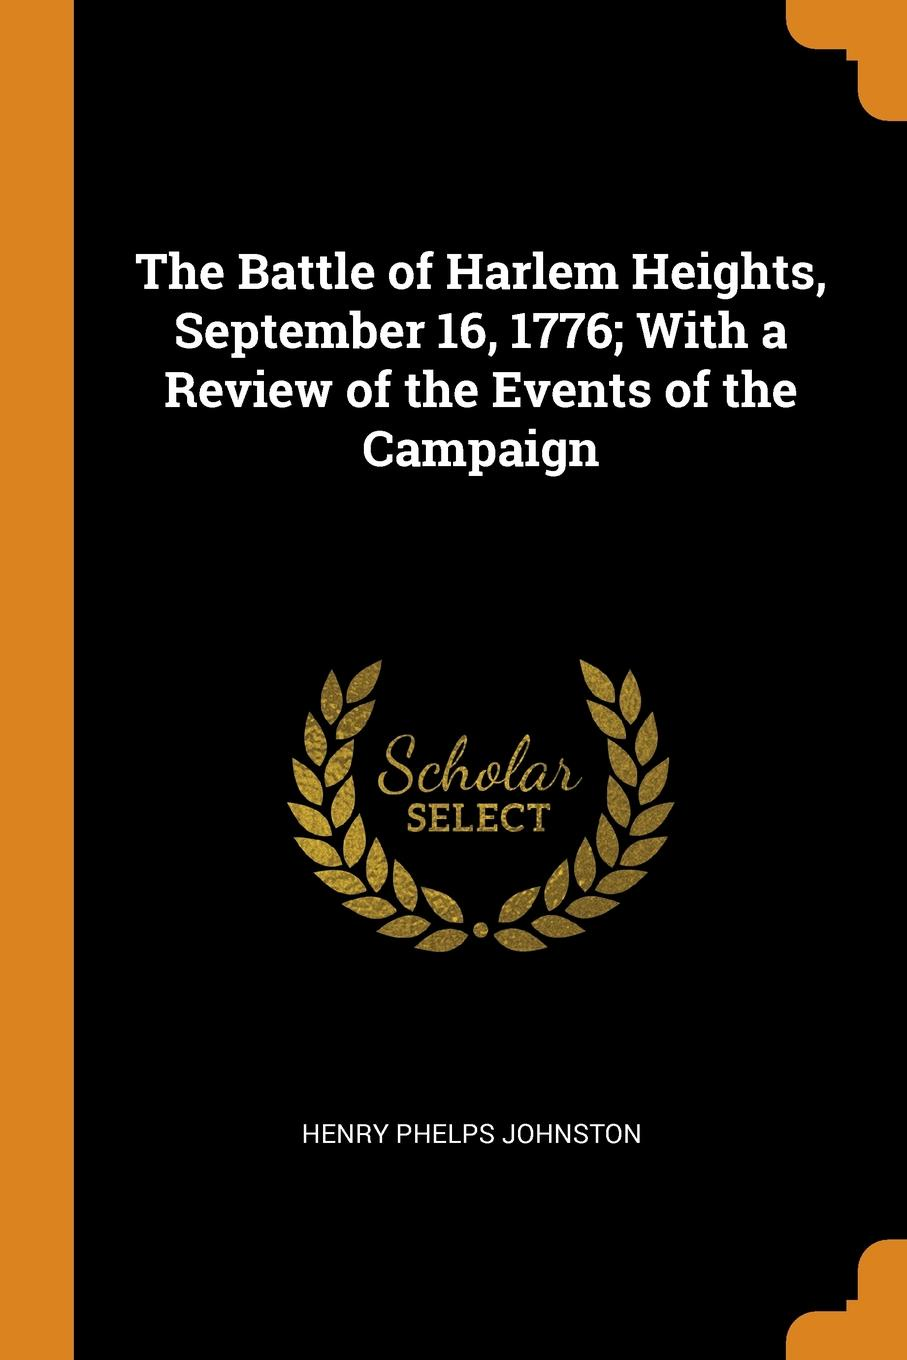 Henry Phelps Johnston The Battle of Harlem Heights, September 16, 1776; With a Review of the Events of the Campaign